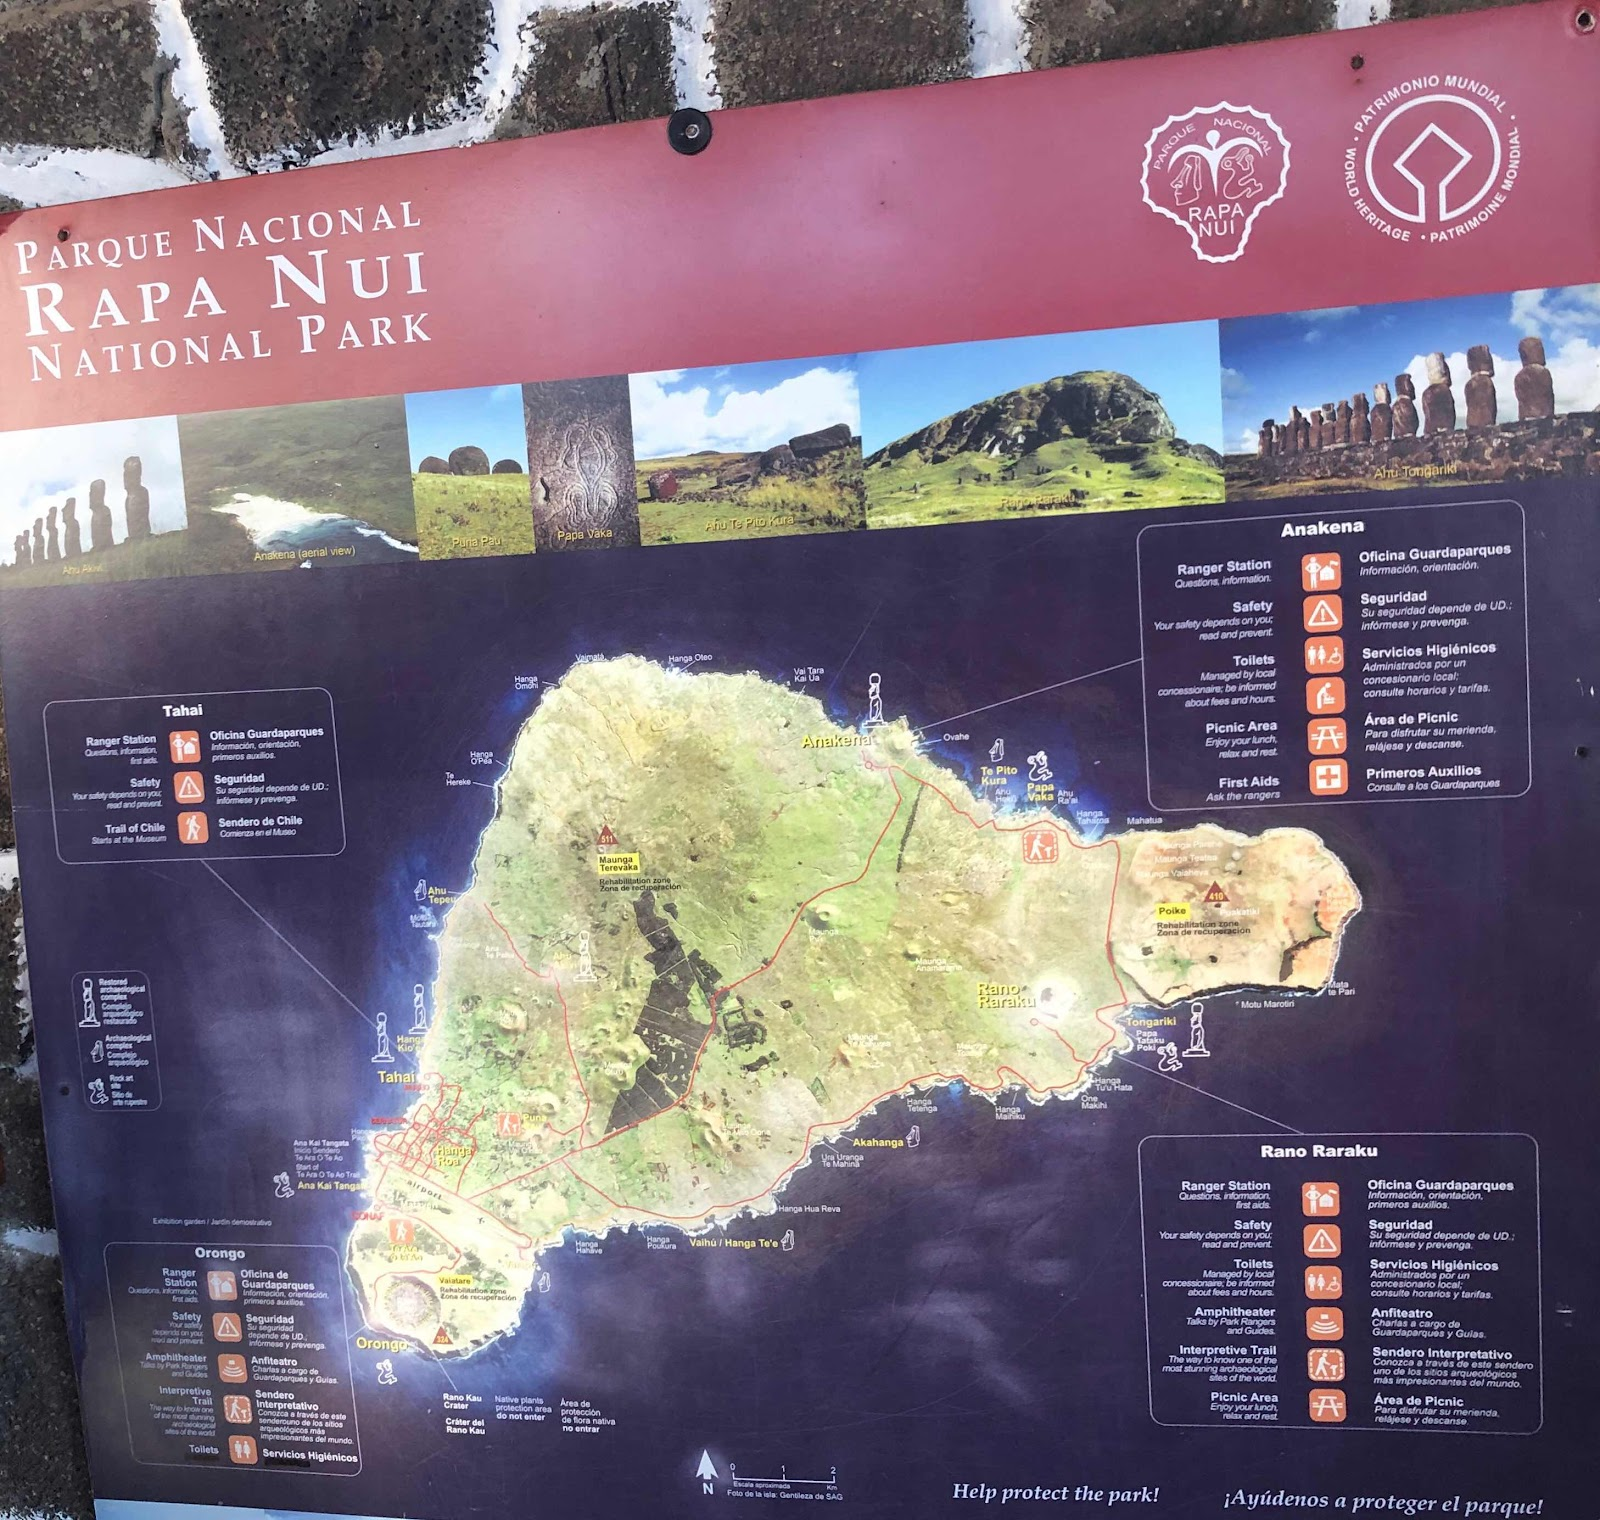 Starting our adventure in Rapa Nui (Easter Island)